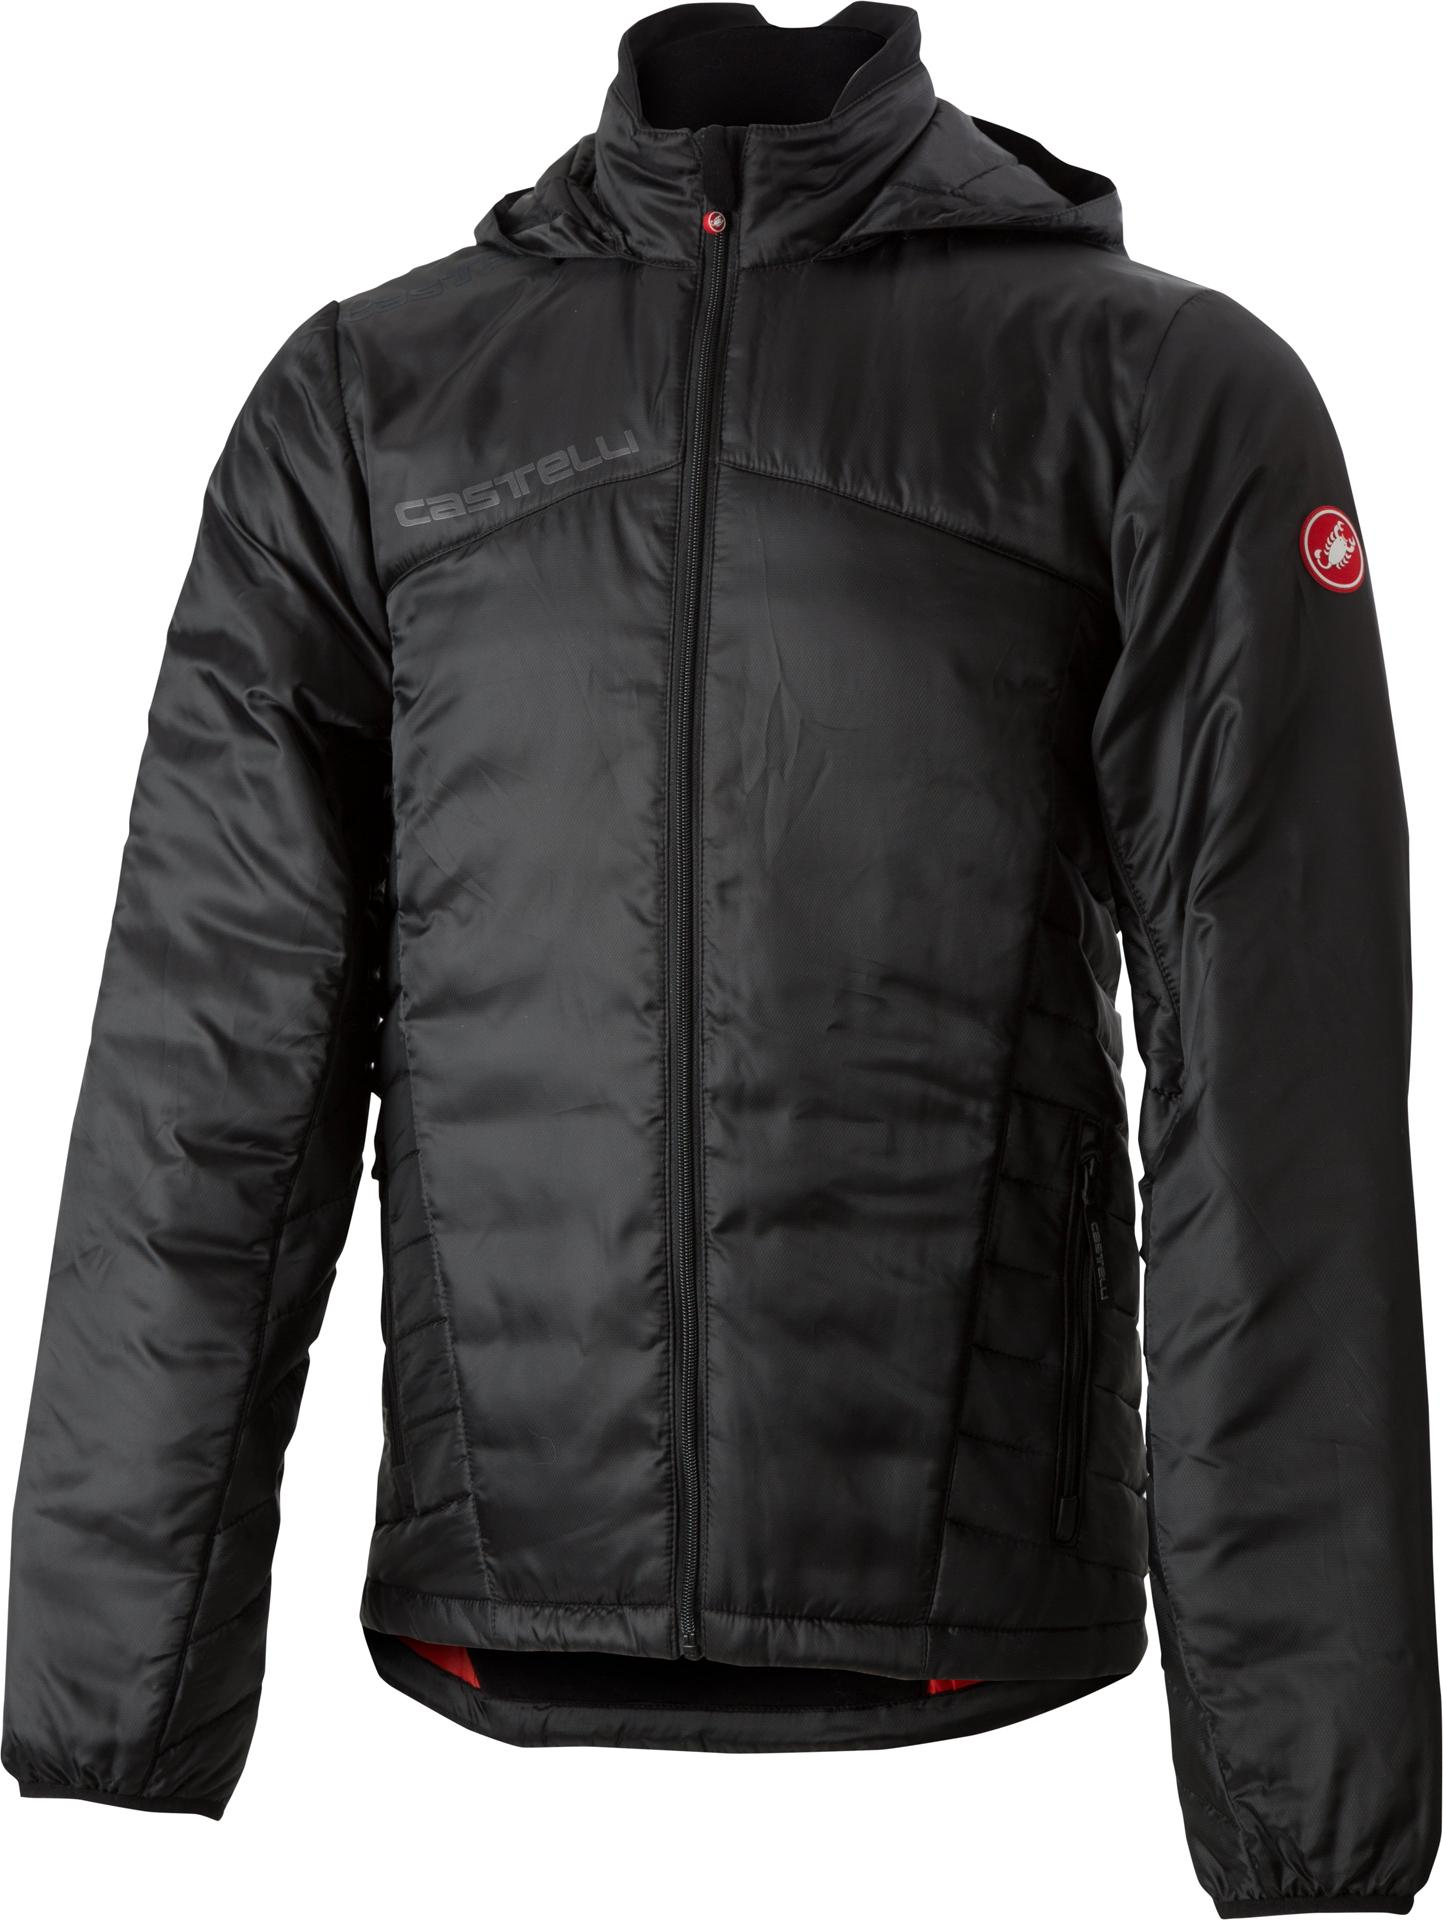 Castelli Casual kleding Heren Zwart  / CA Meccanico 2 Puffy Jacket Light Black